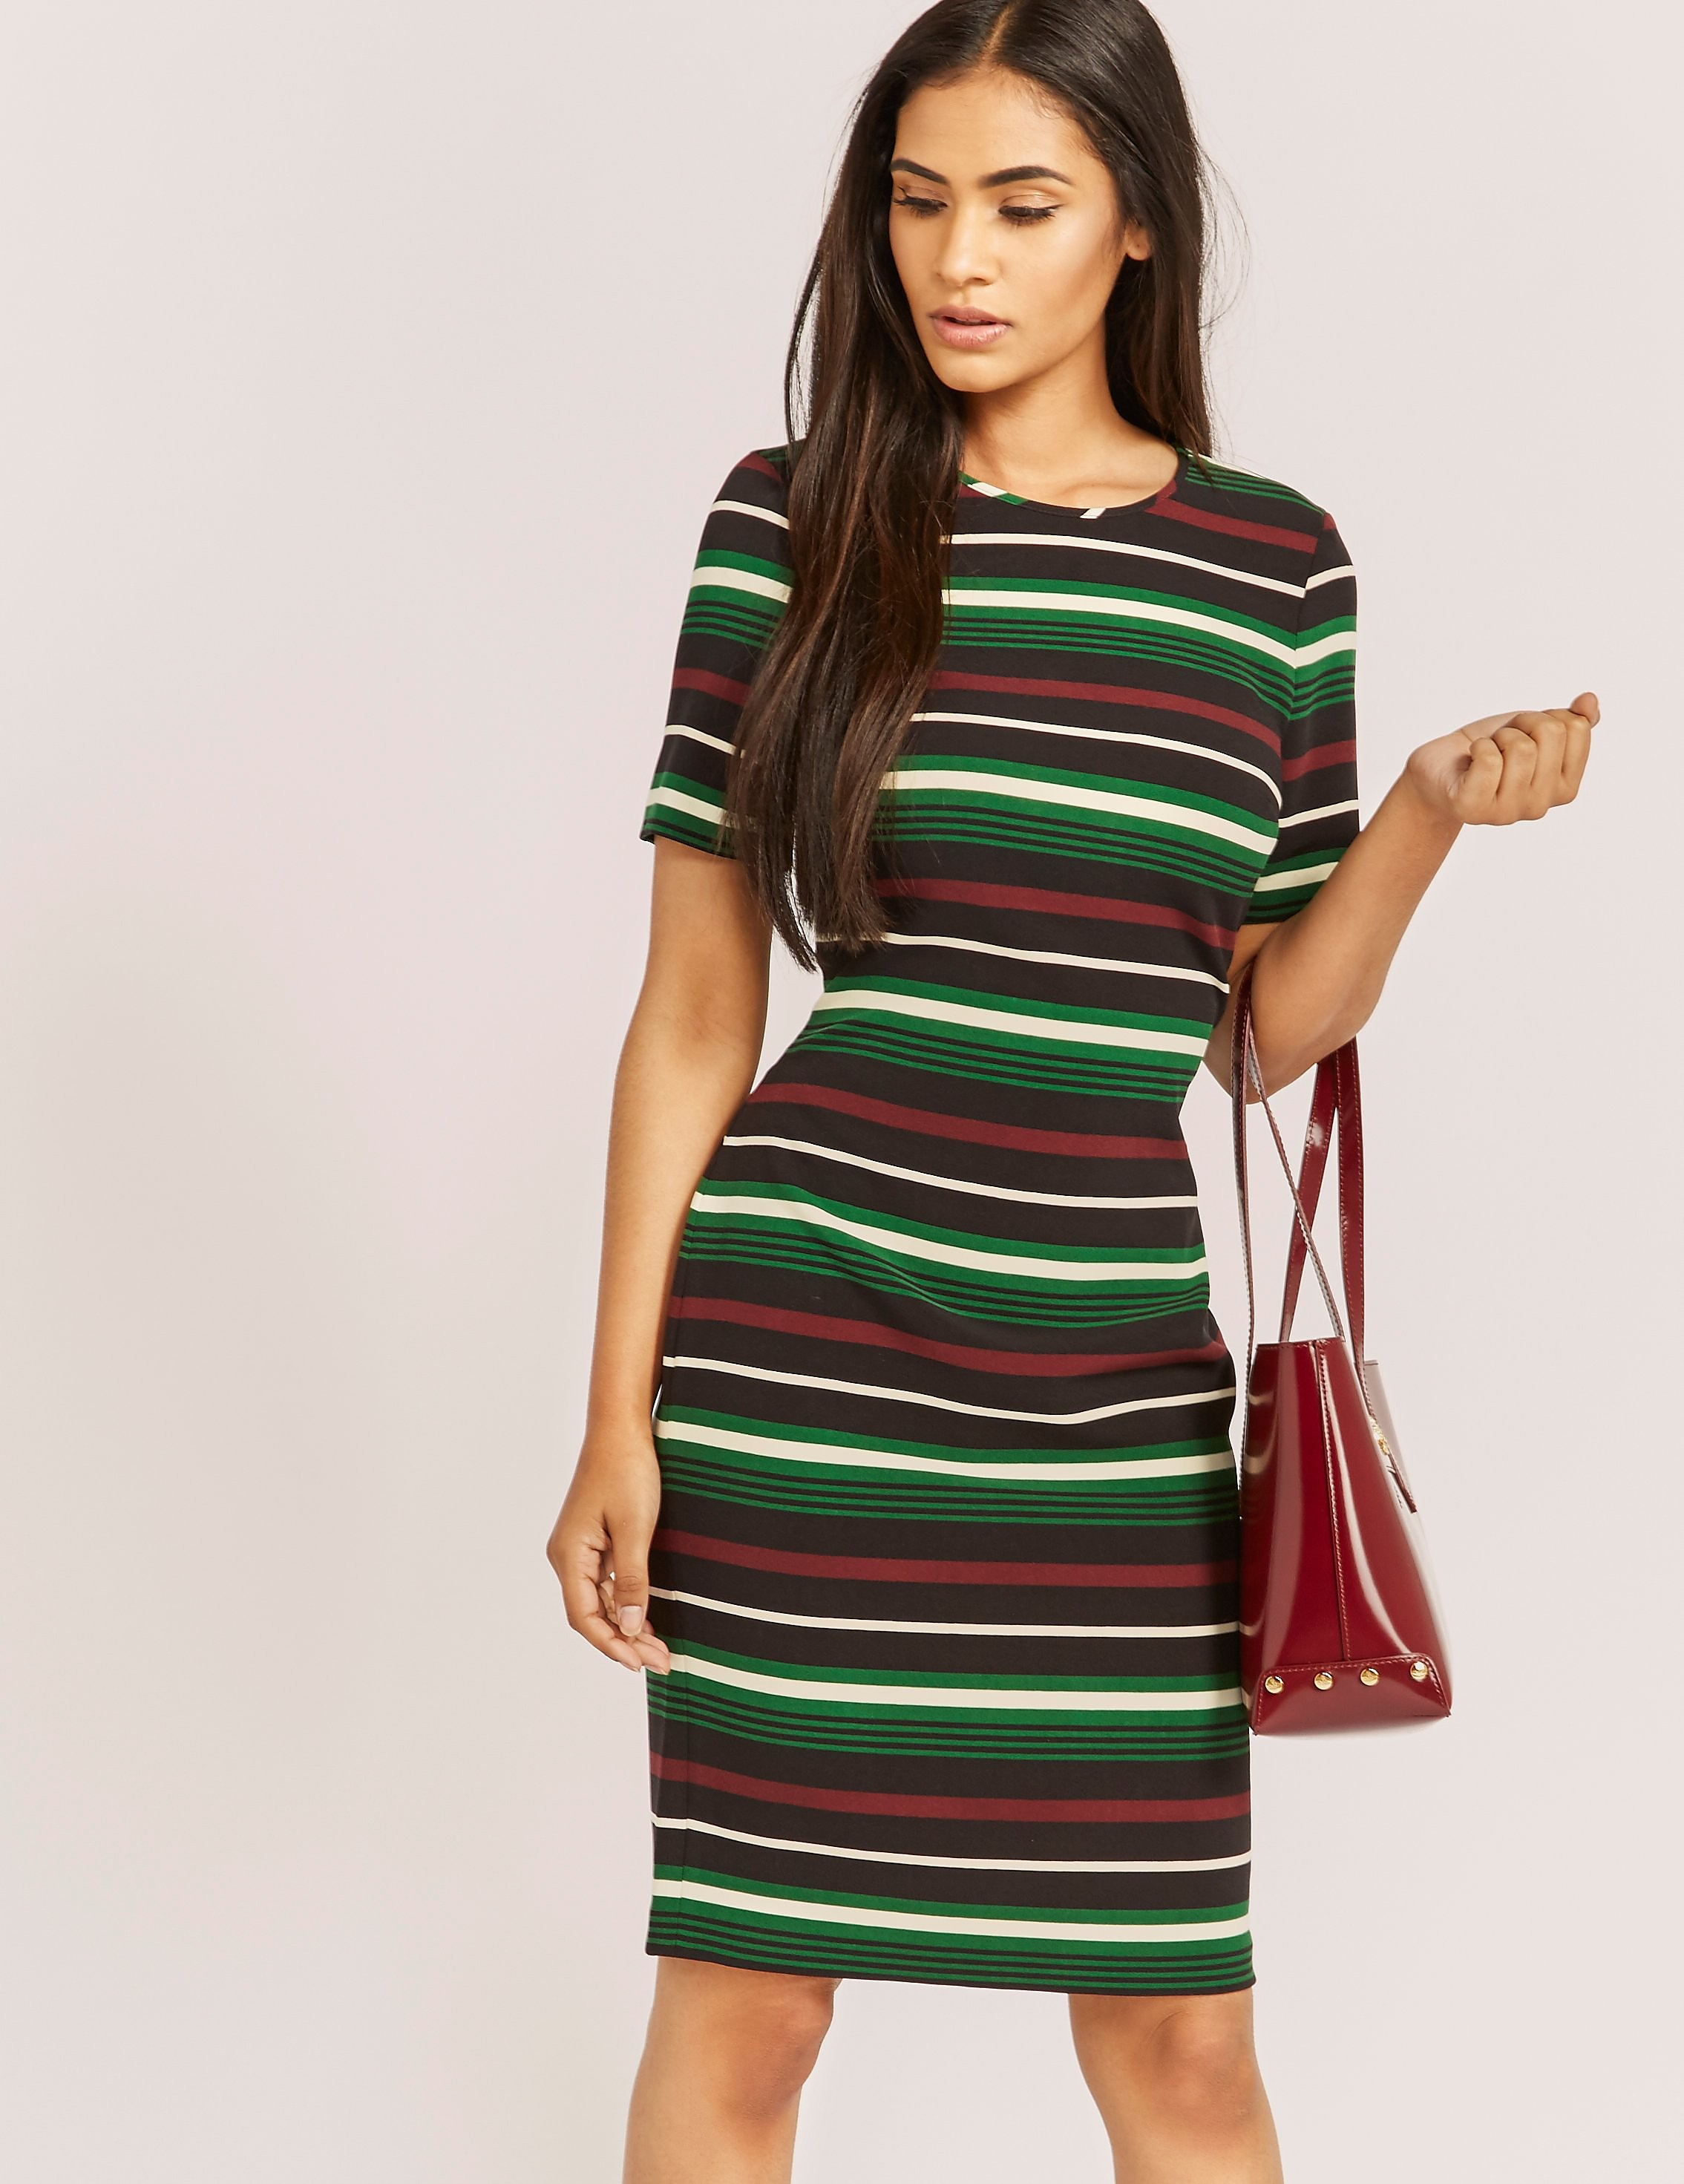 Michael Kors Palmetto Dress